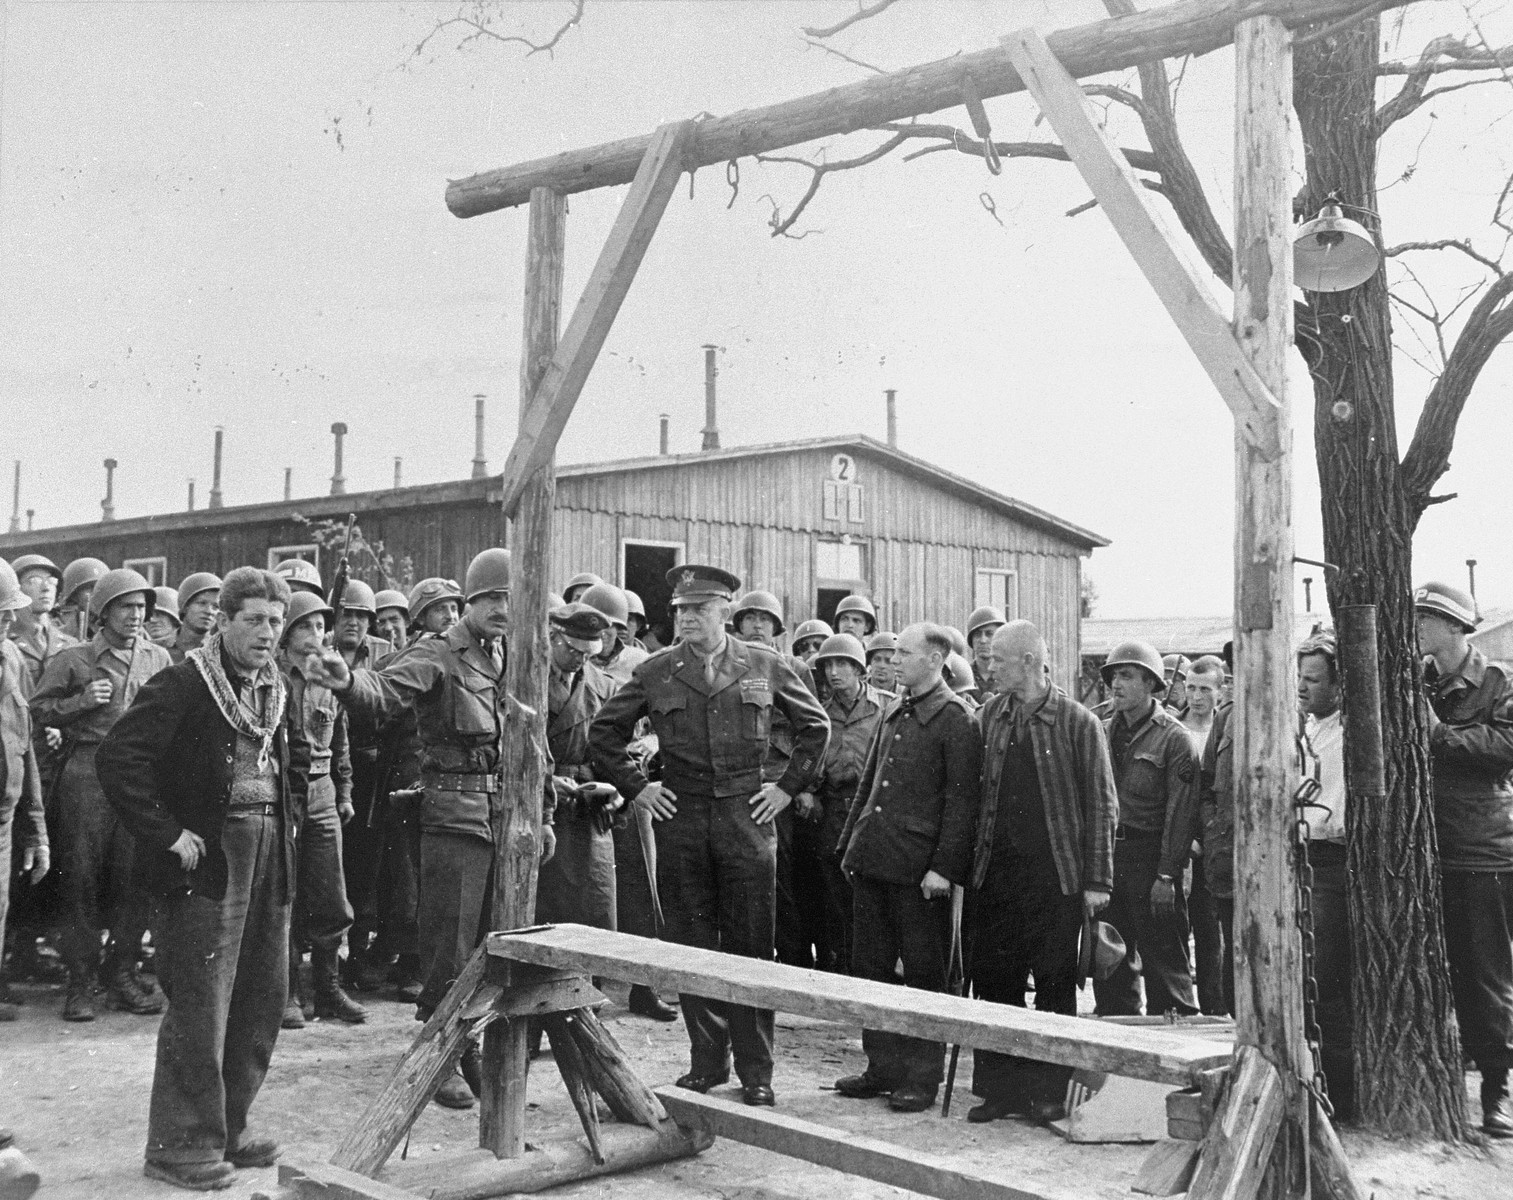 """During an official tour of the newly liberated Ohrdruf concentration camp, an Austrian Jewish survivor describes to General Dwight Eisenhower and the members of his entourage the use of the gallows in the camp.  Among those pictured is Jules Grad, correspondent for the U.S. Army newspaper """"Stars and Stripes"""" (on the right)."""